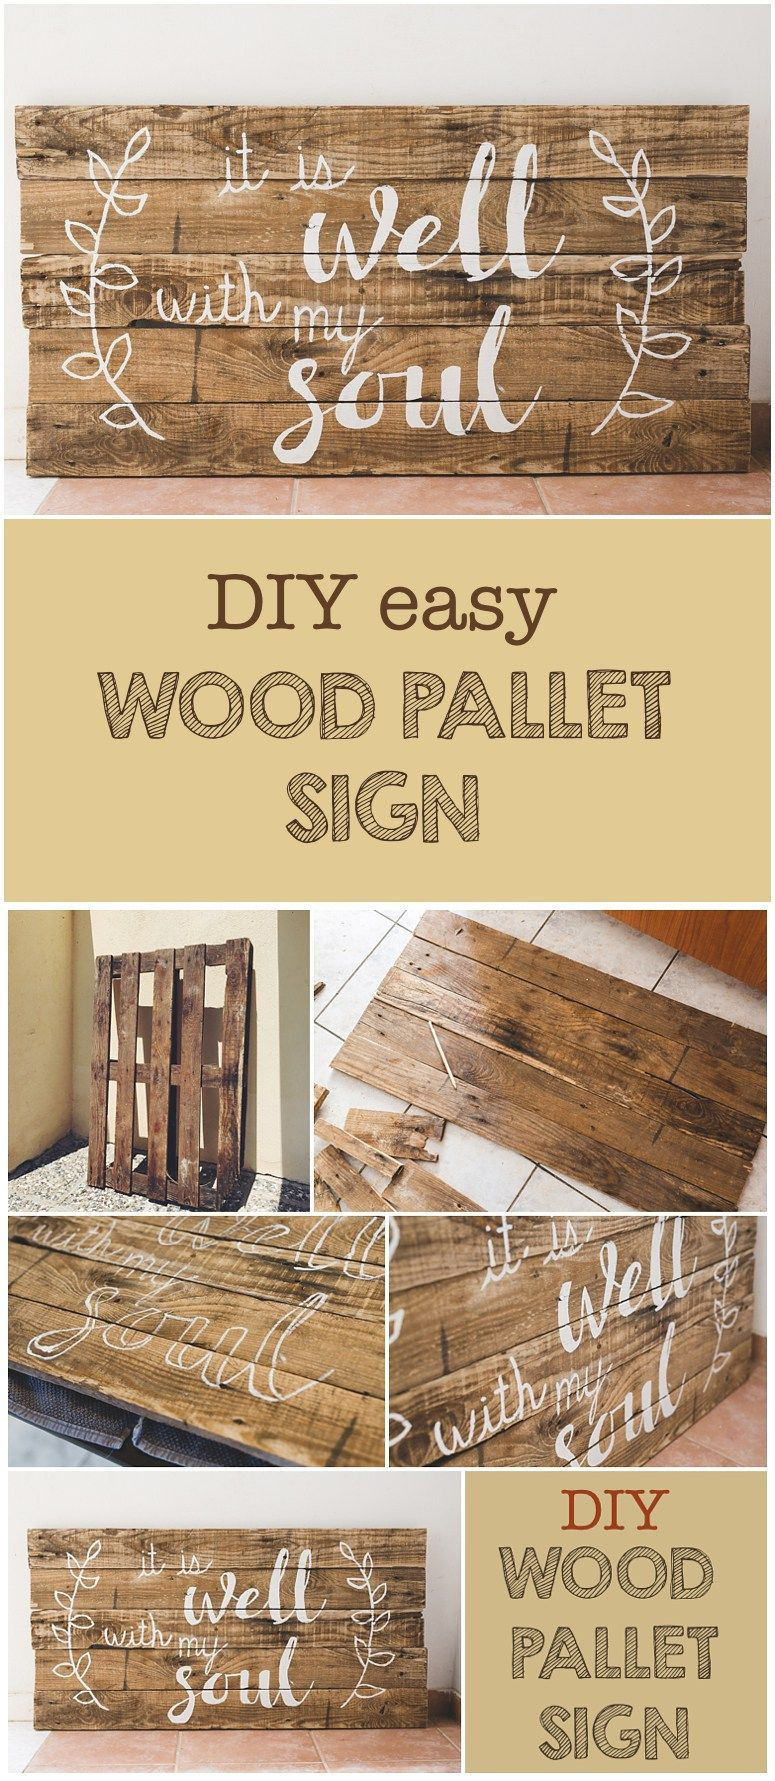 This Diy Woodpallet Sign Is Super Simple To Make Yet So